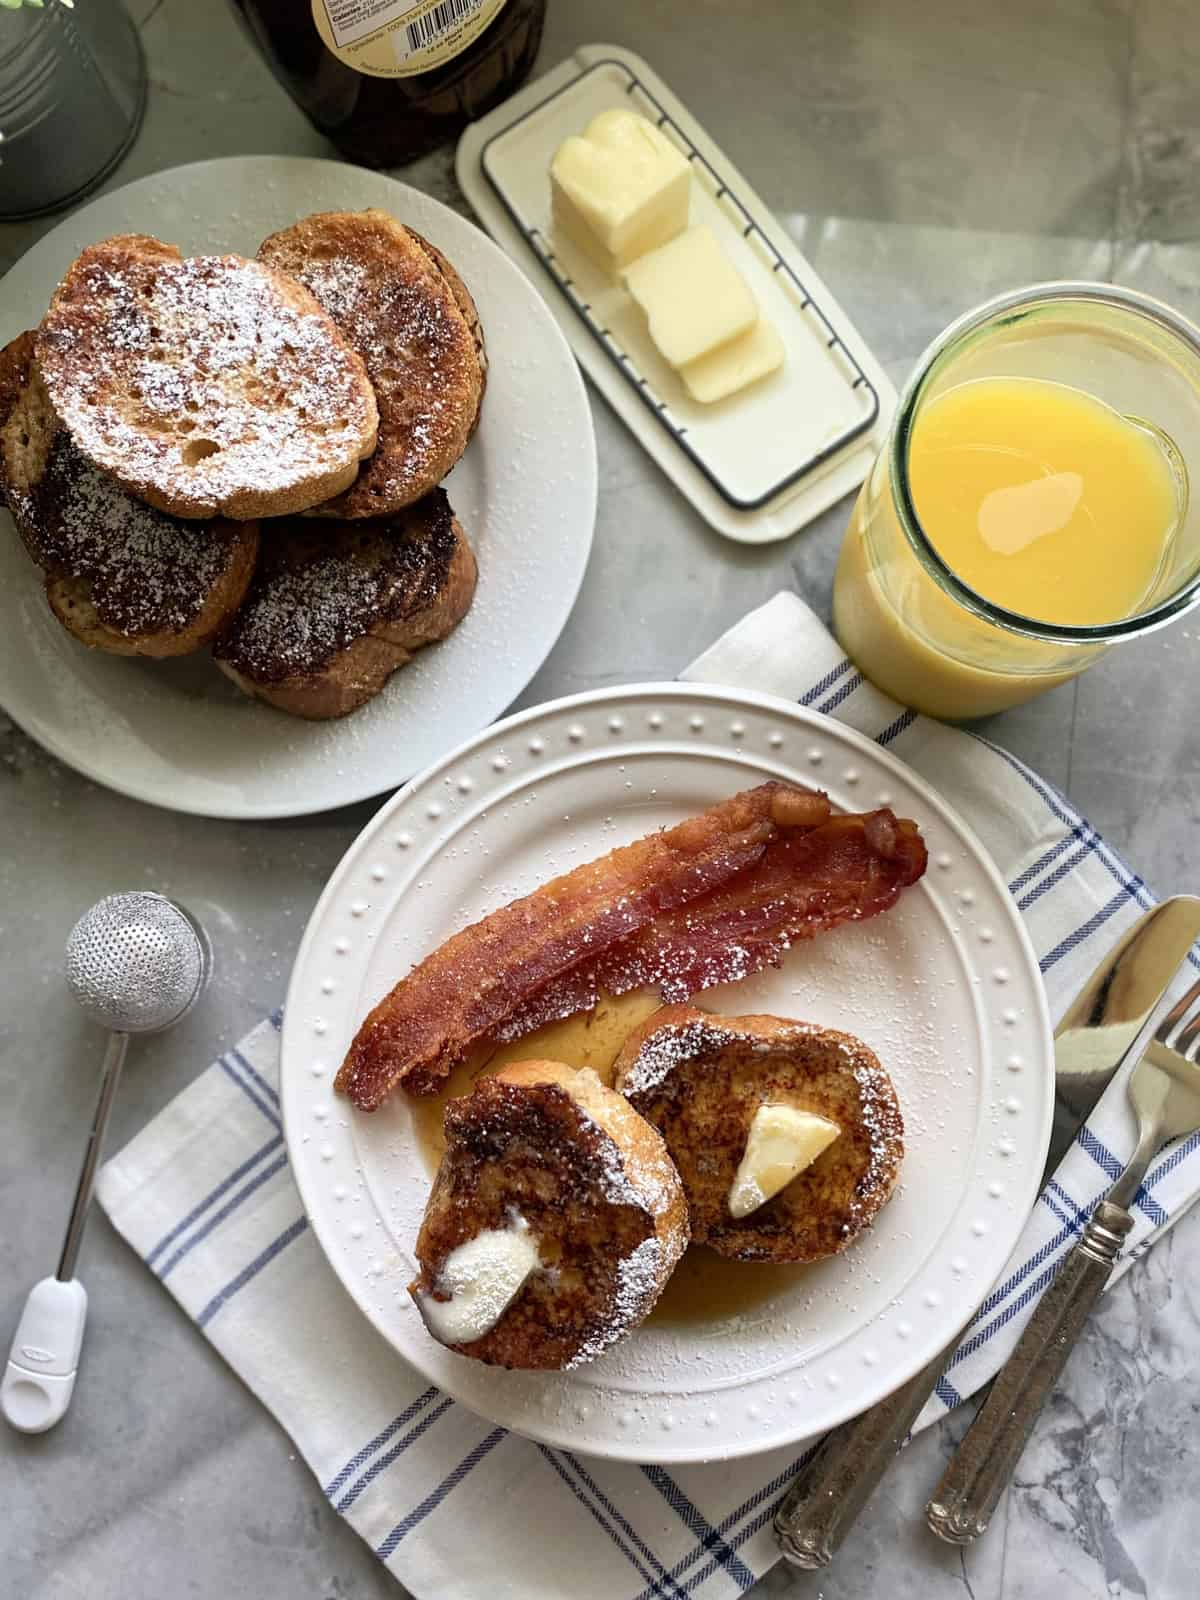 Top view of a stack of french toast and another plate filled with french toast, butter, syrup, and bacon.